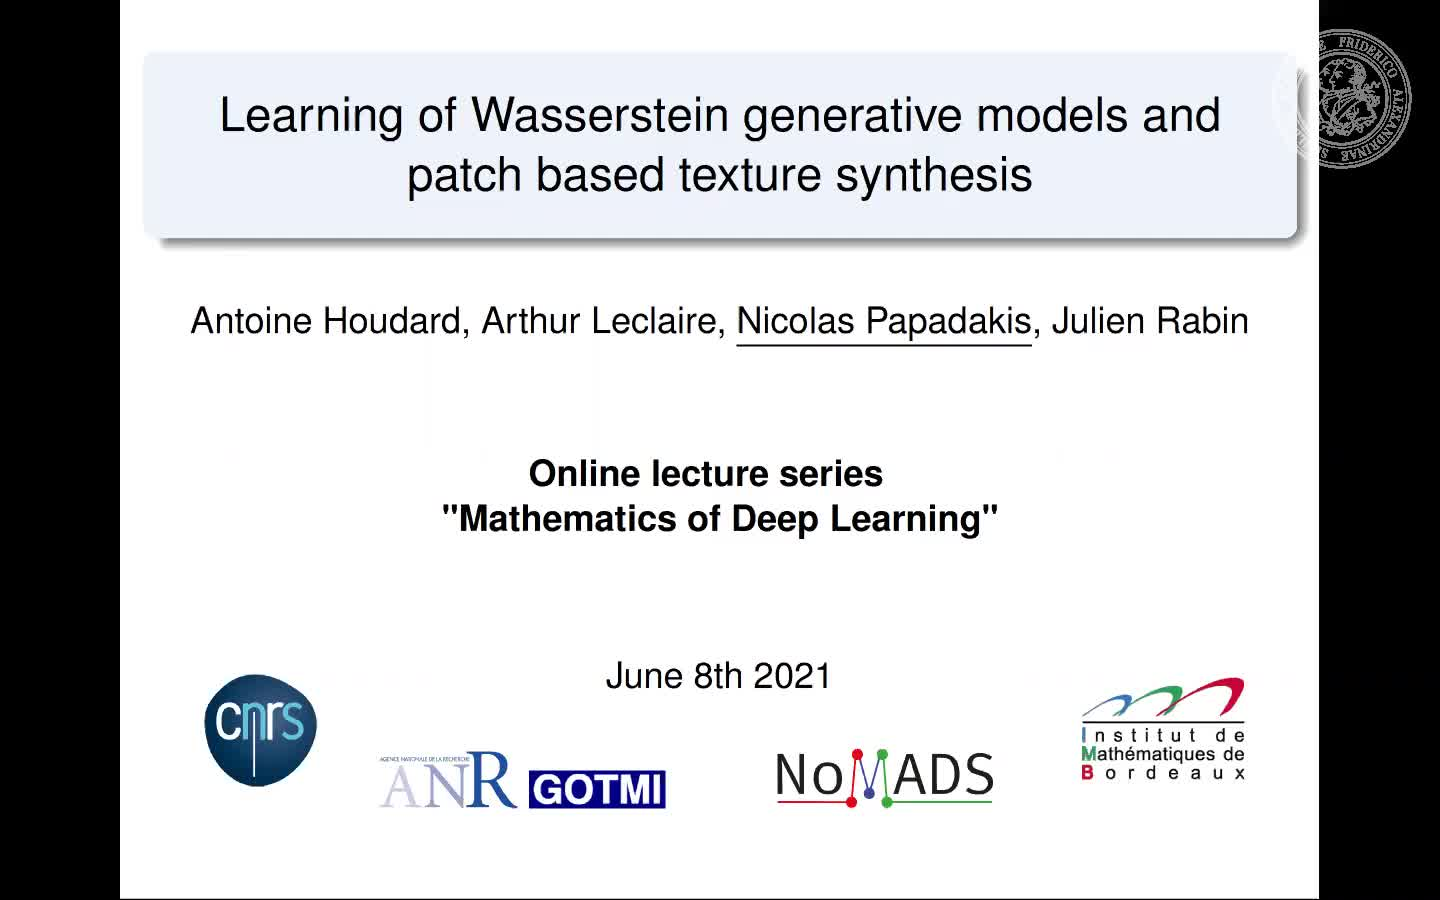 Learning of Wasserstein Generative Models and Patch-based Texture Synthesis preview image